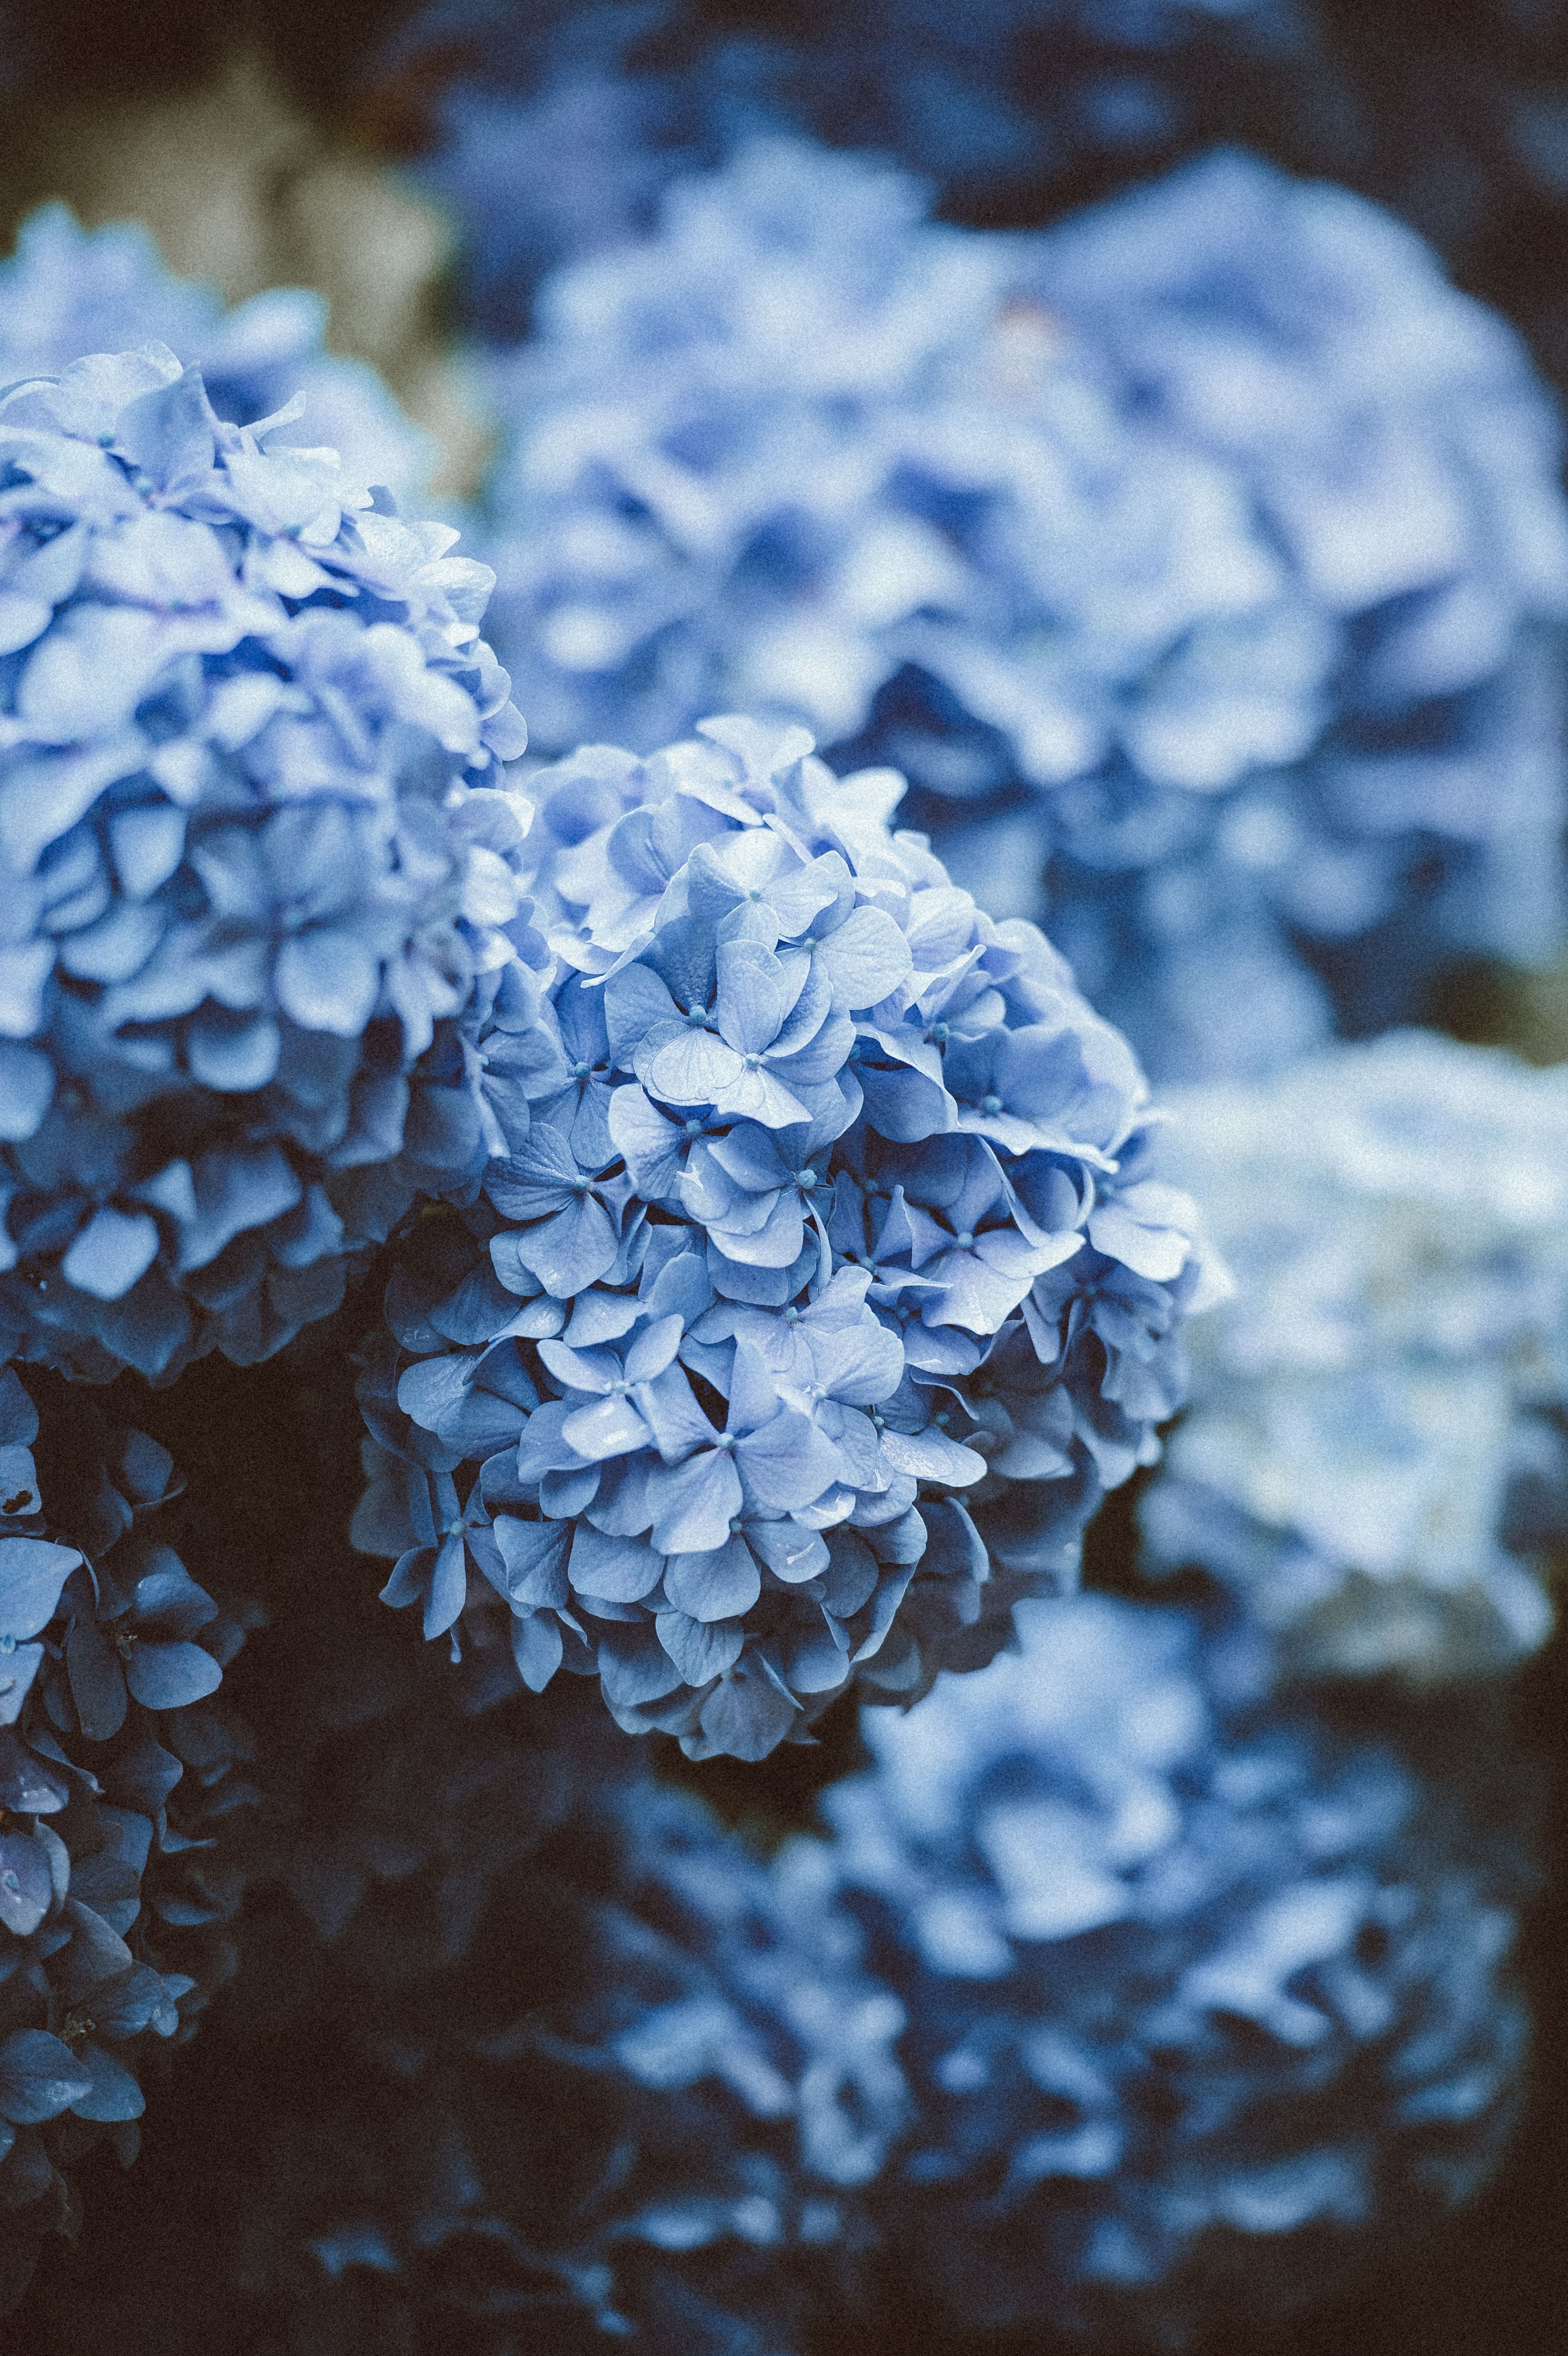 Blue Flowers Wallpaper Iphone Android Background Lockscreen Followme Blueflowerwallpaperiphone Hydrangea Picture Flowers Photography Blue Hydrangea